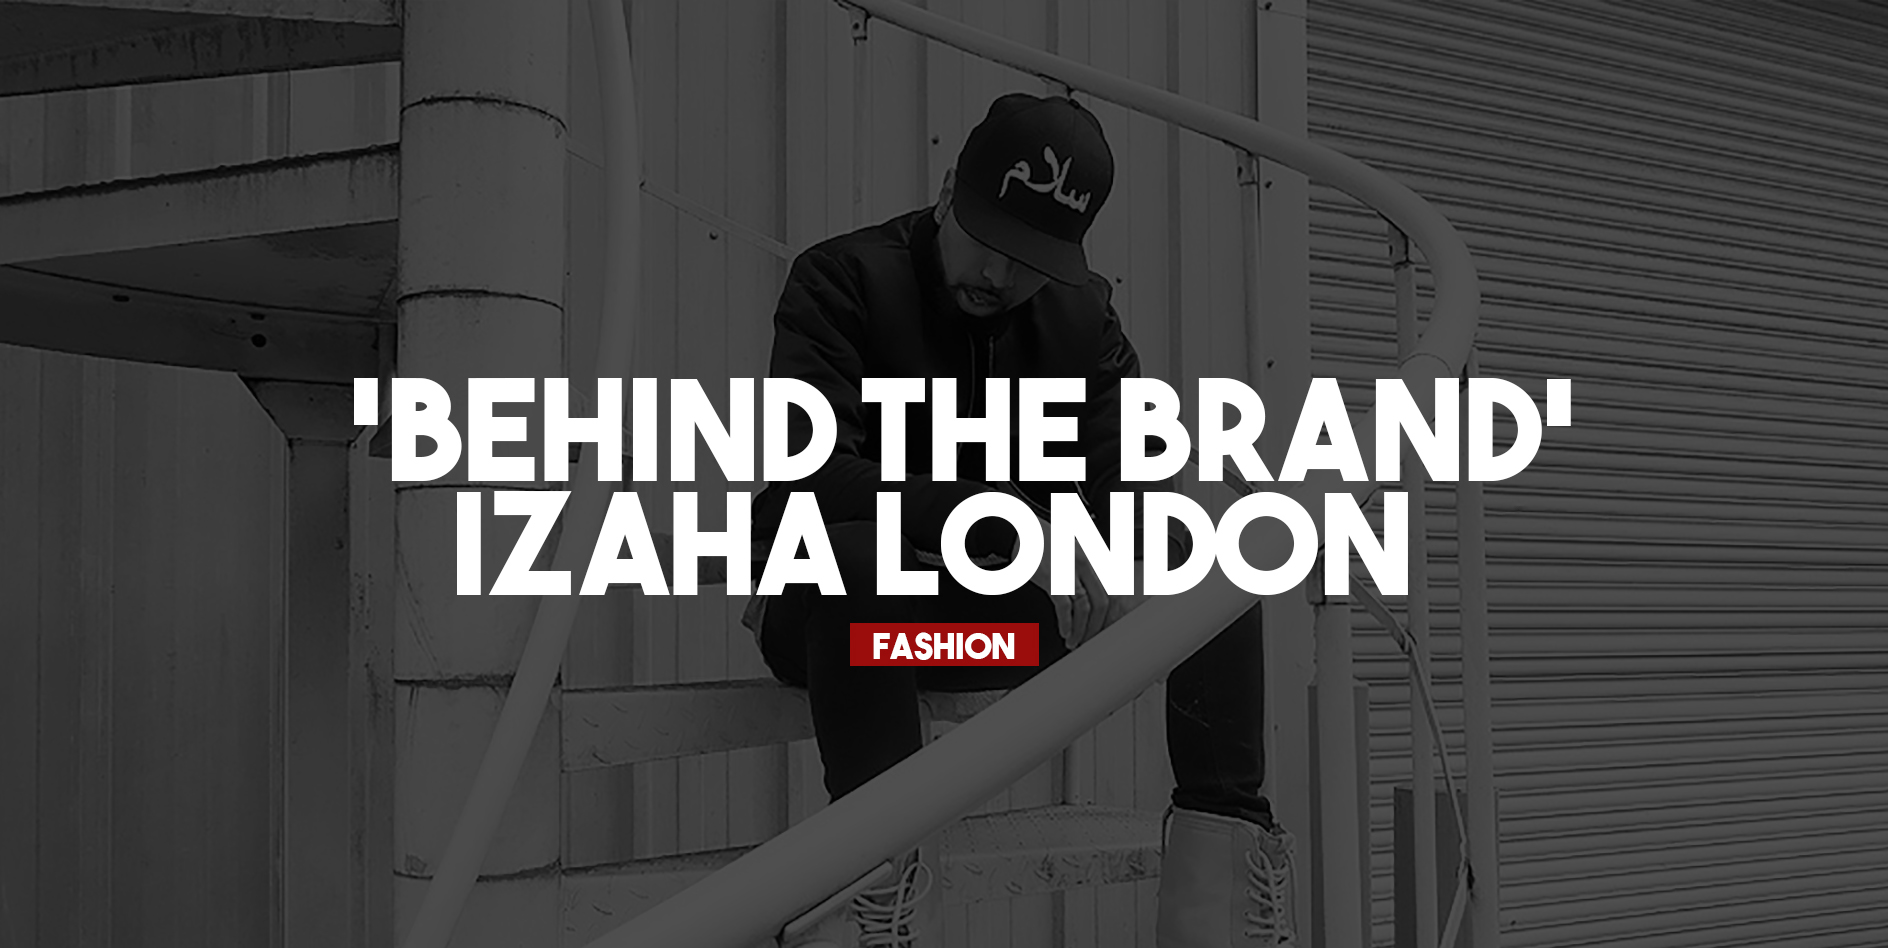 In this article we spoke to Faisal Choudhry: YouTuber and founder of streetwear brand IZAHA London.